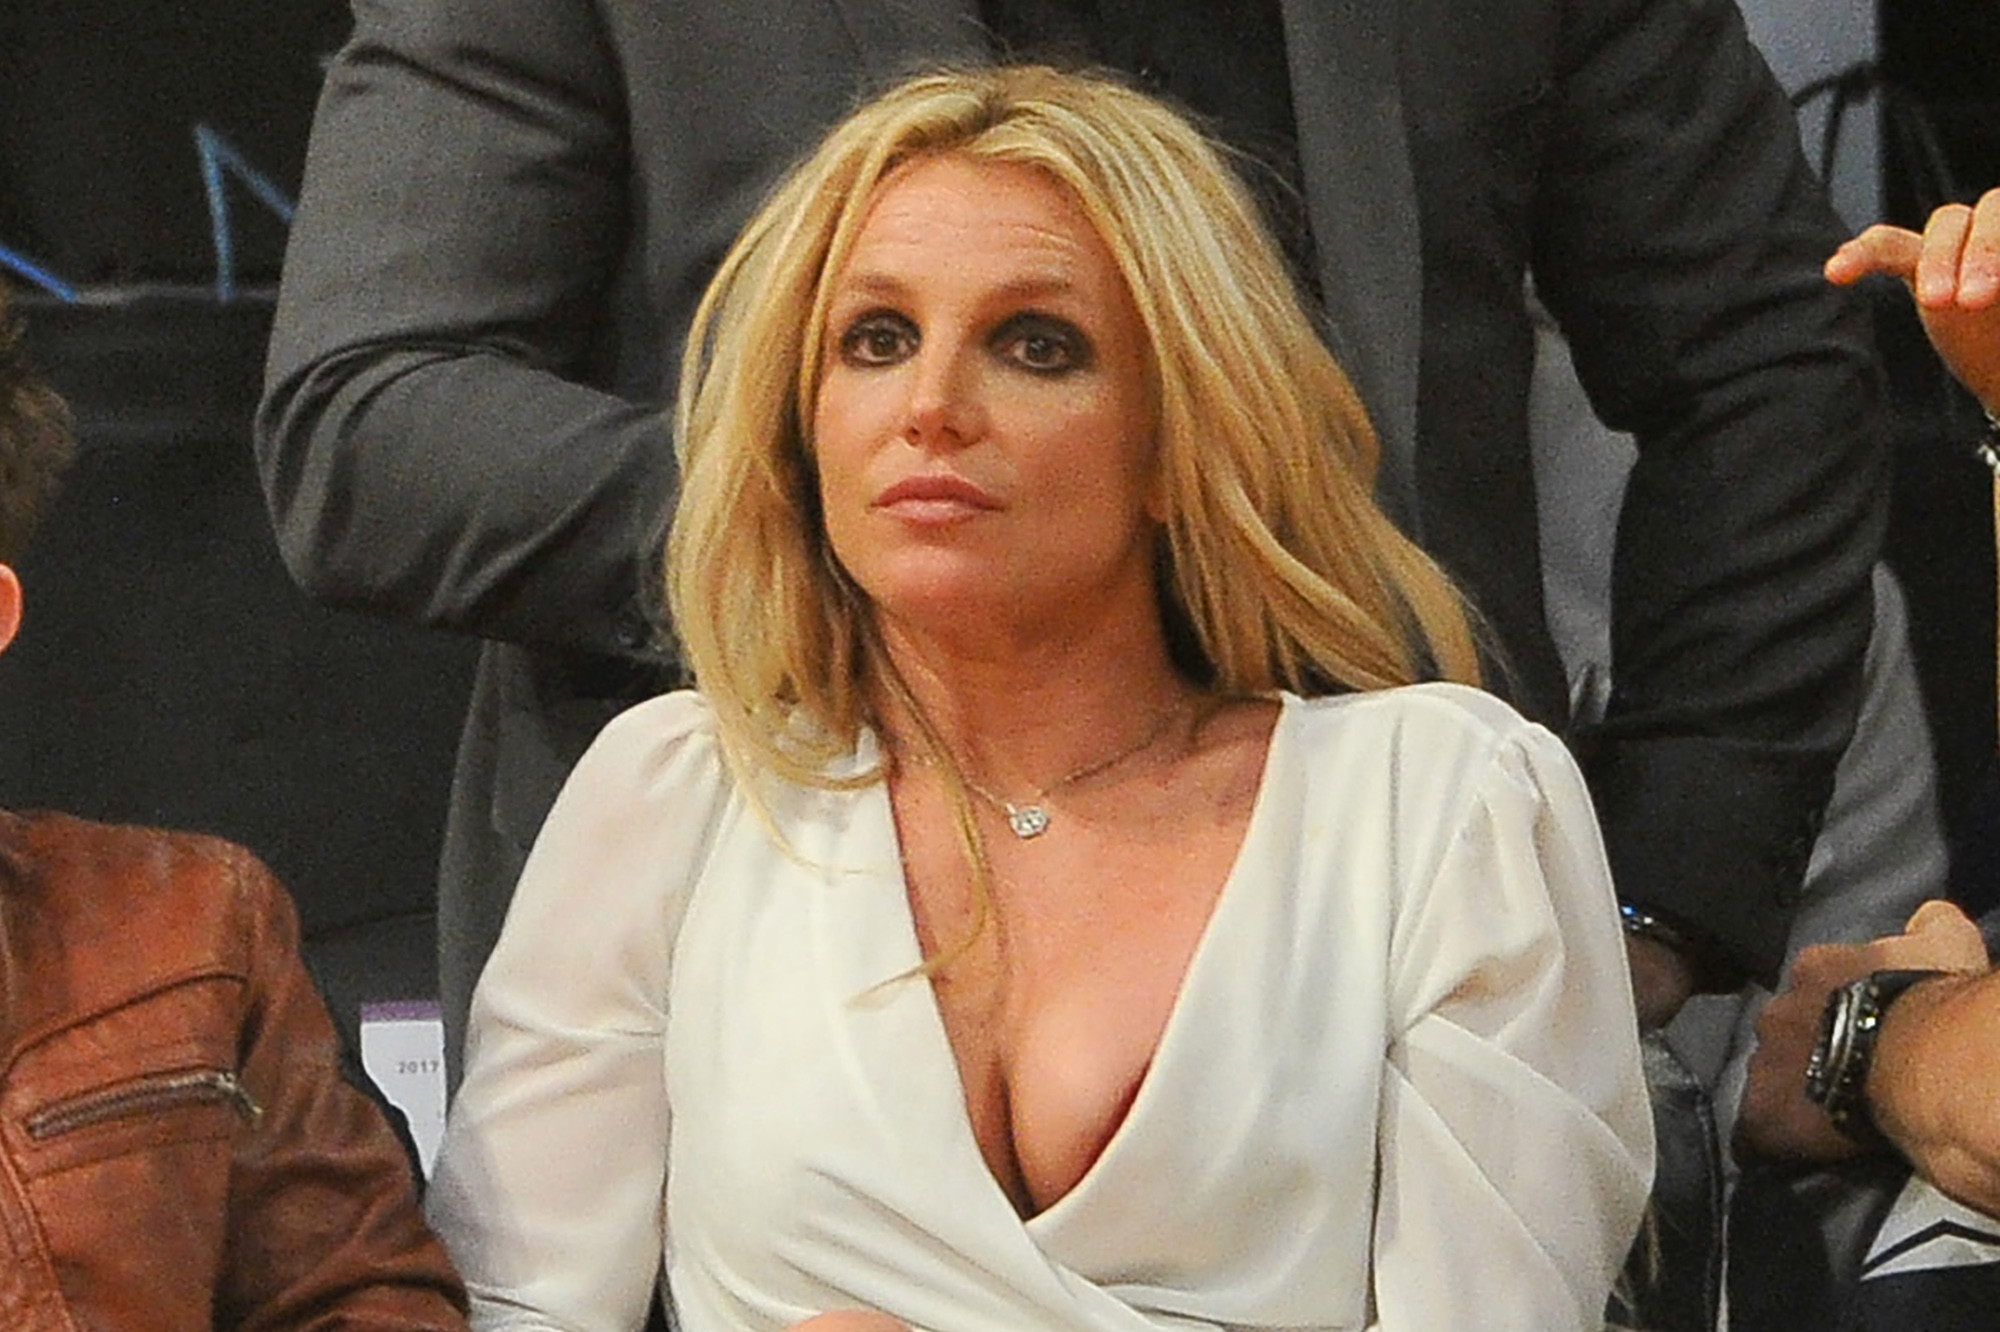 britney-spears-not-forced-to-go-to-mental-health-facility-by-her-dad-but-checked-herself-in-heres-why